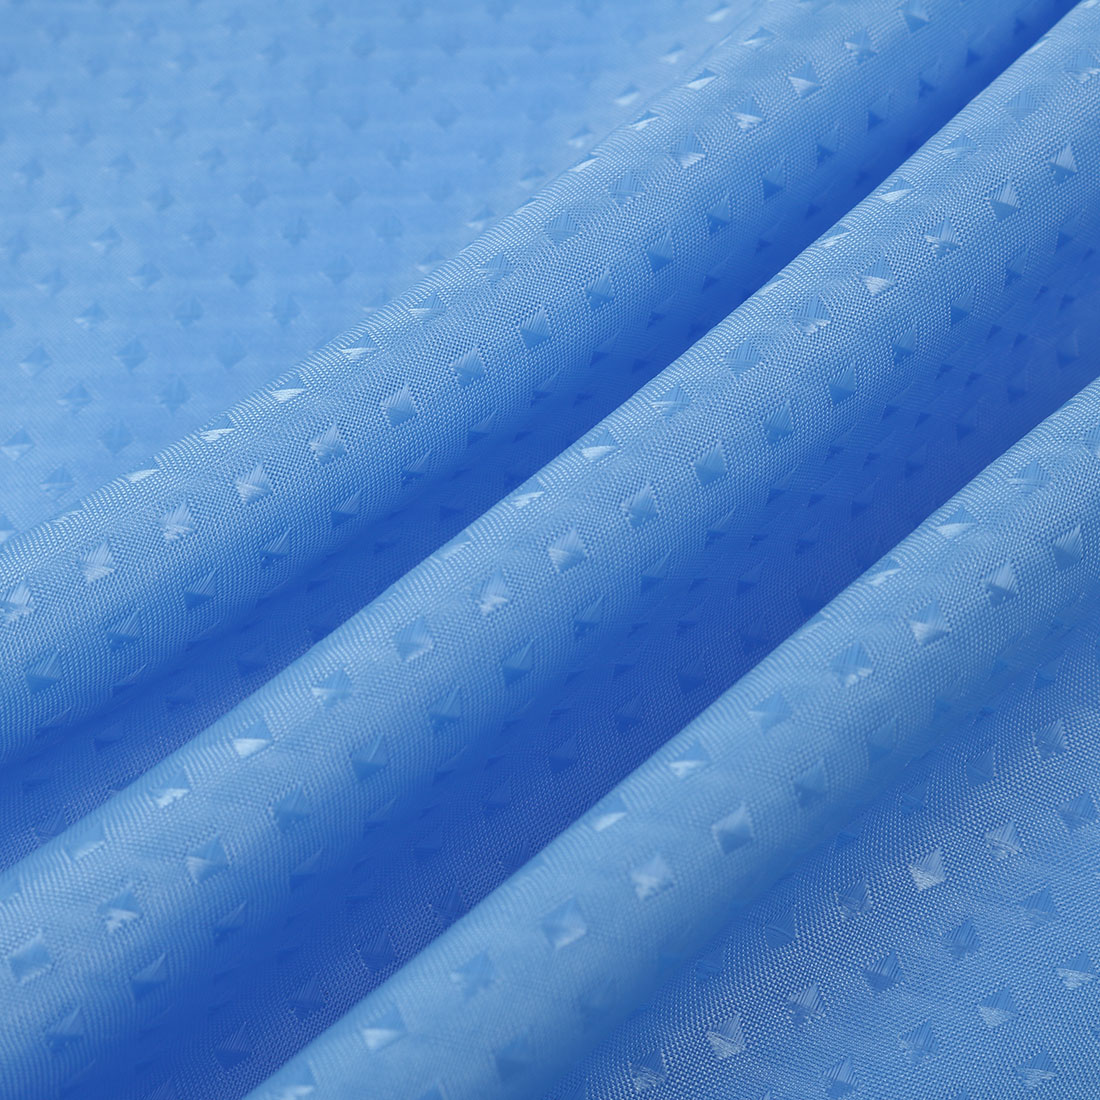 Polyester Bathroom Shower Curtains With Hook Rings Blue 72